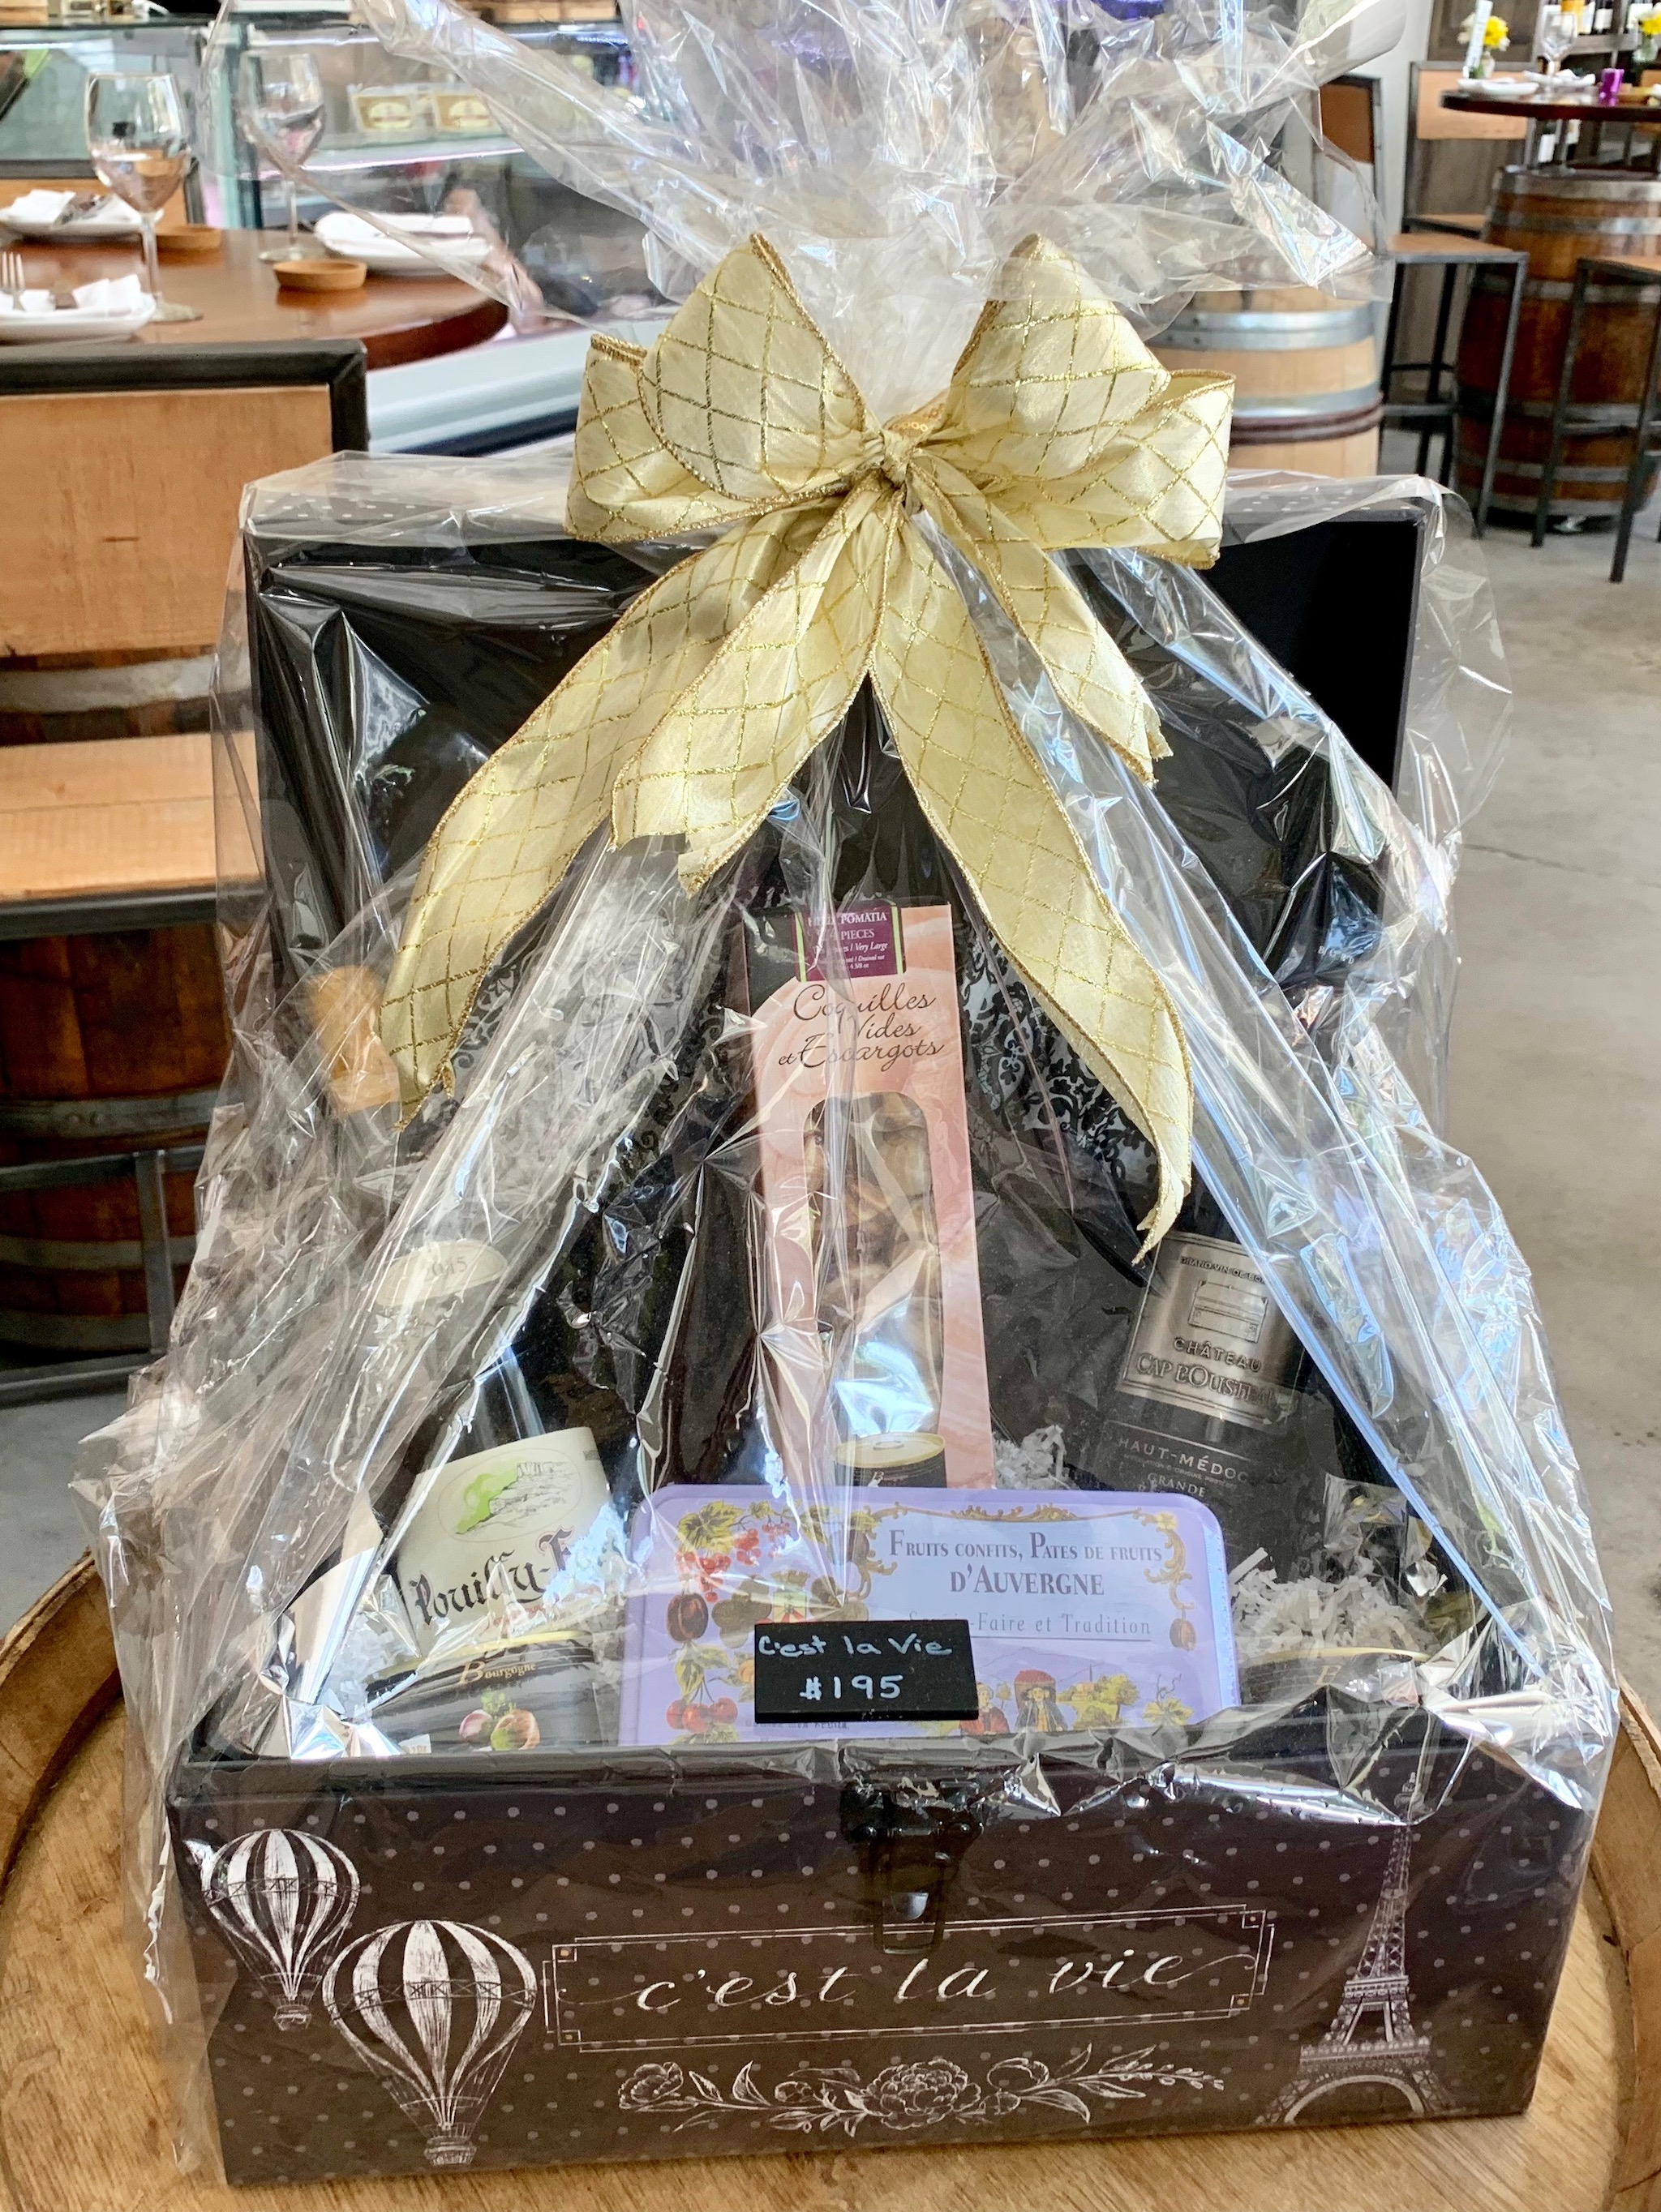 Bacchus gift baskets for purchase